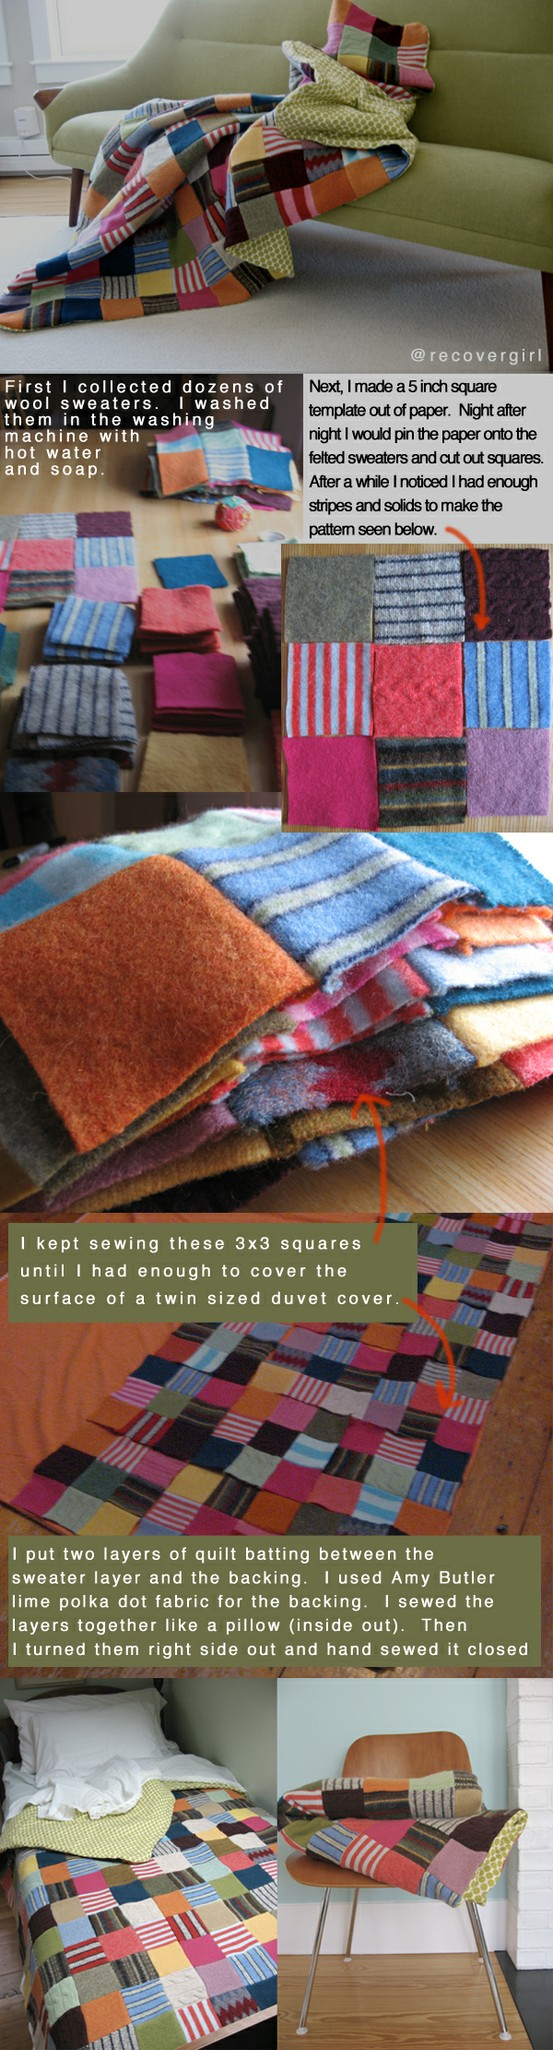 Quilt made out of old wool sweaters!  Gorgeous!